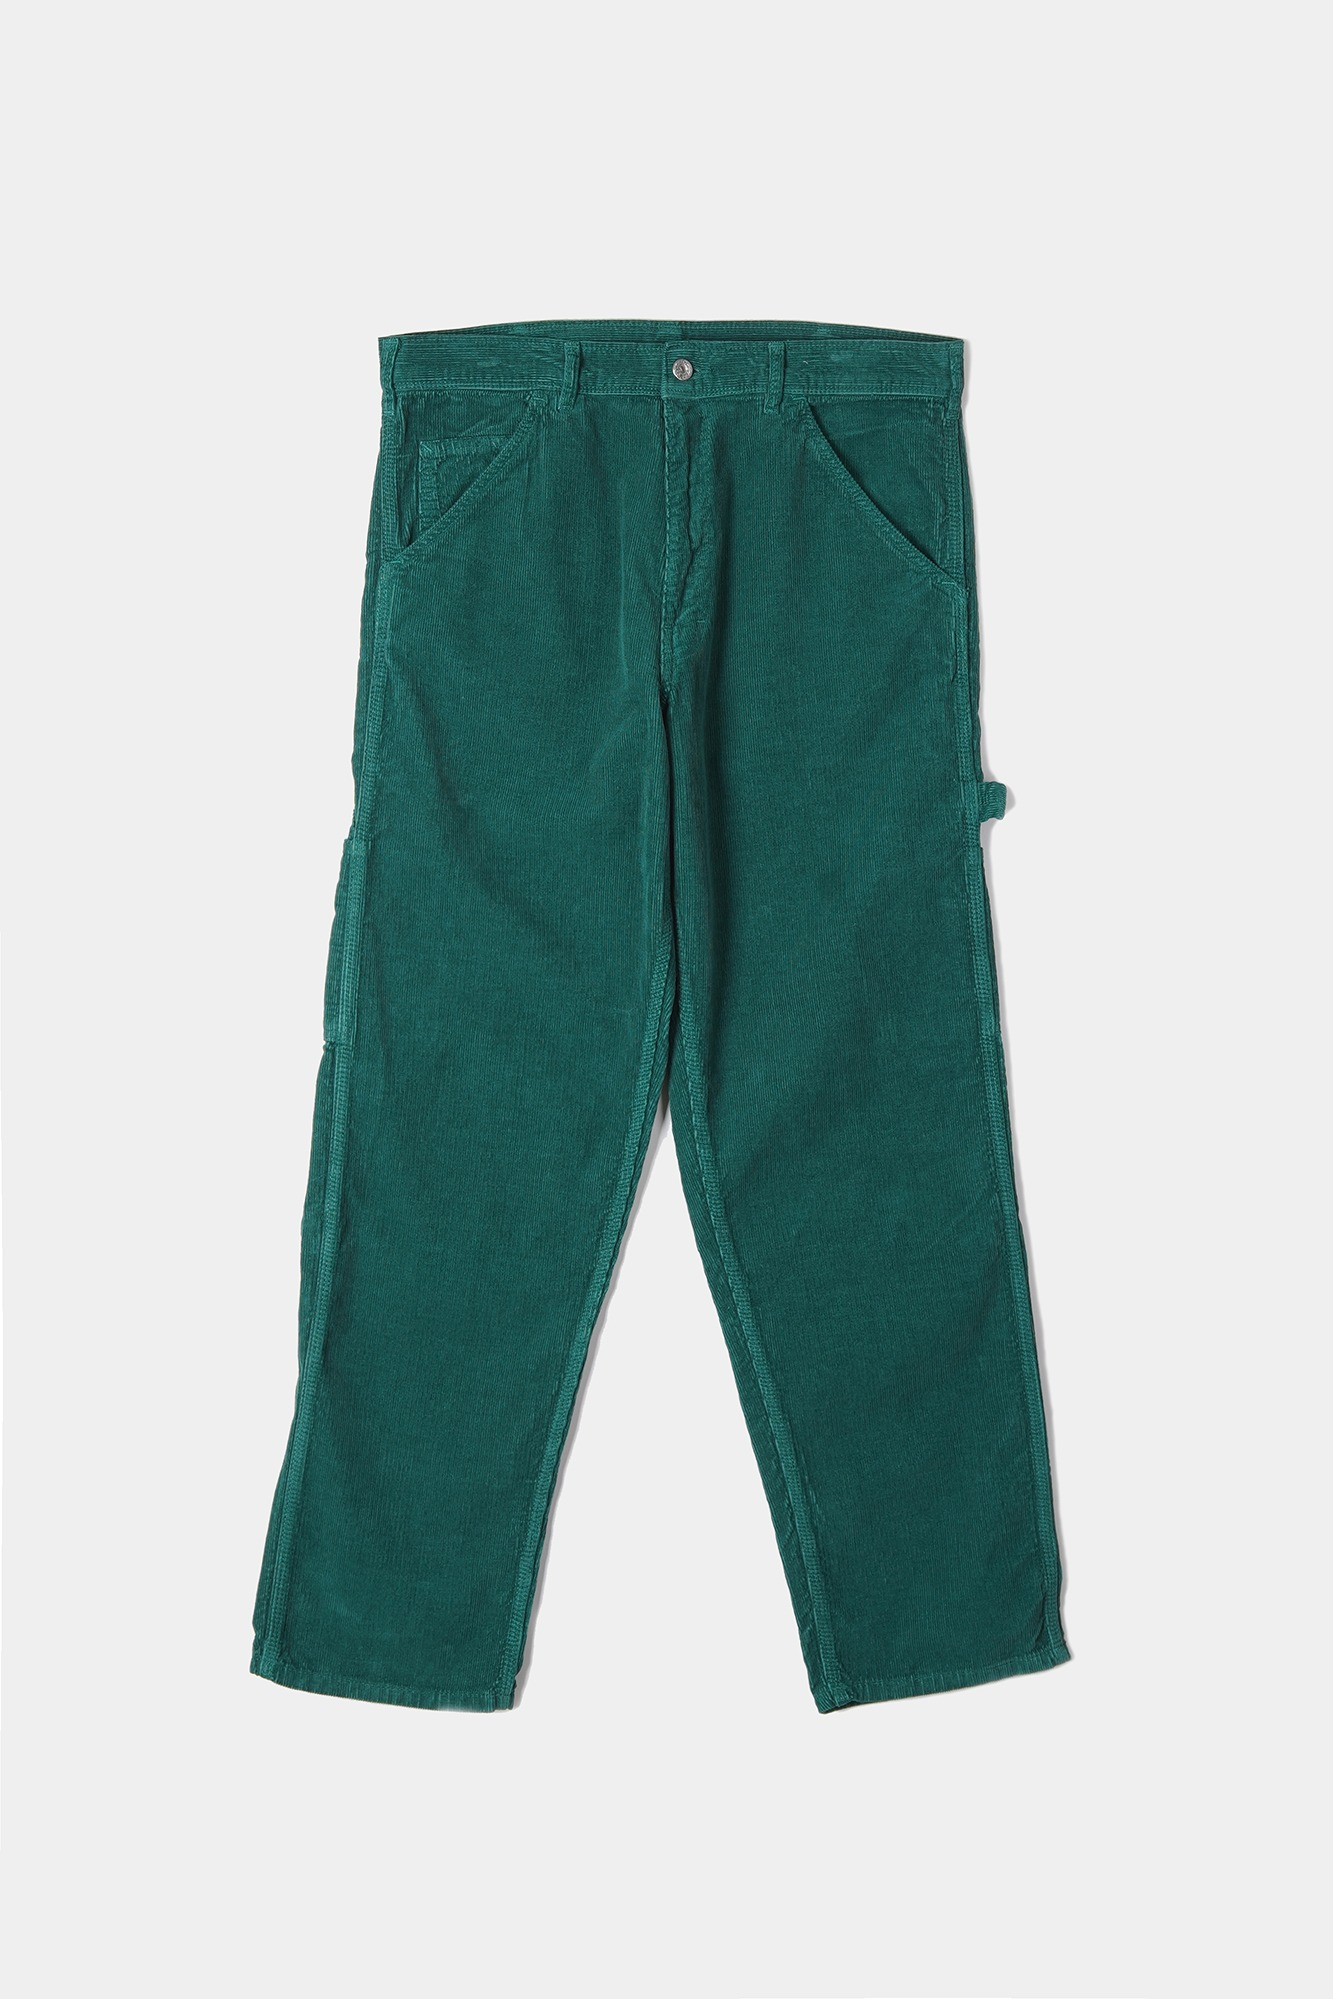 "STAN RAY OG Painter Pants Cord ""Indian Green Cord"""